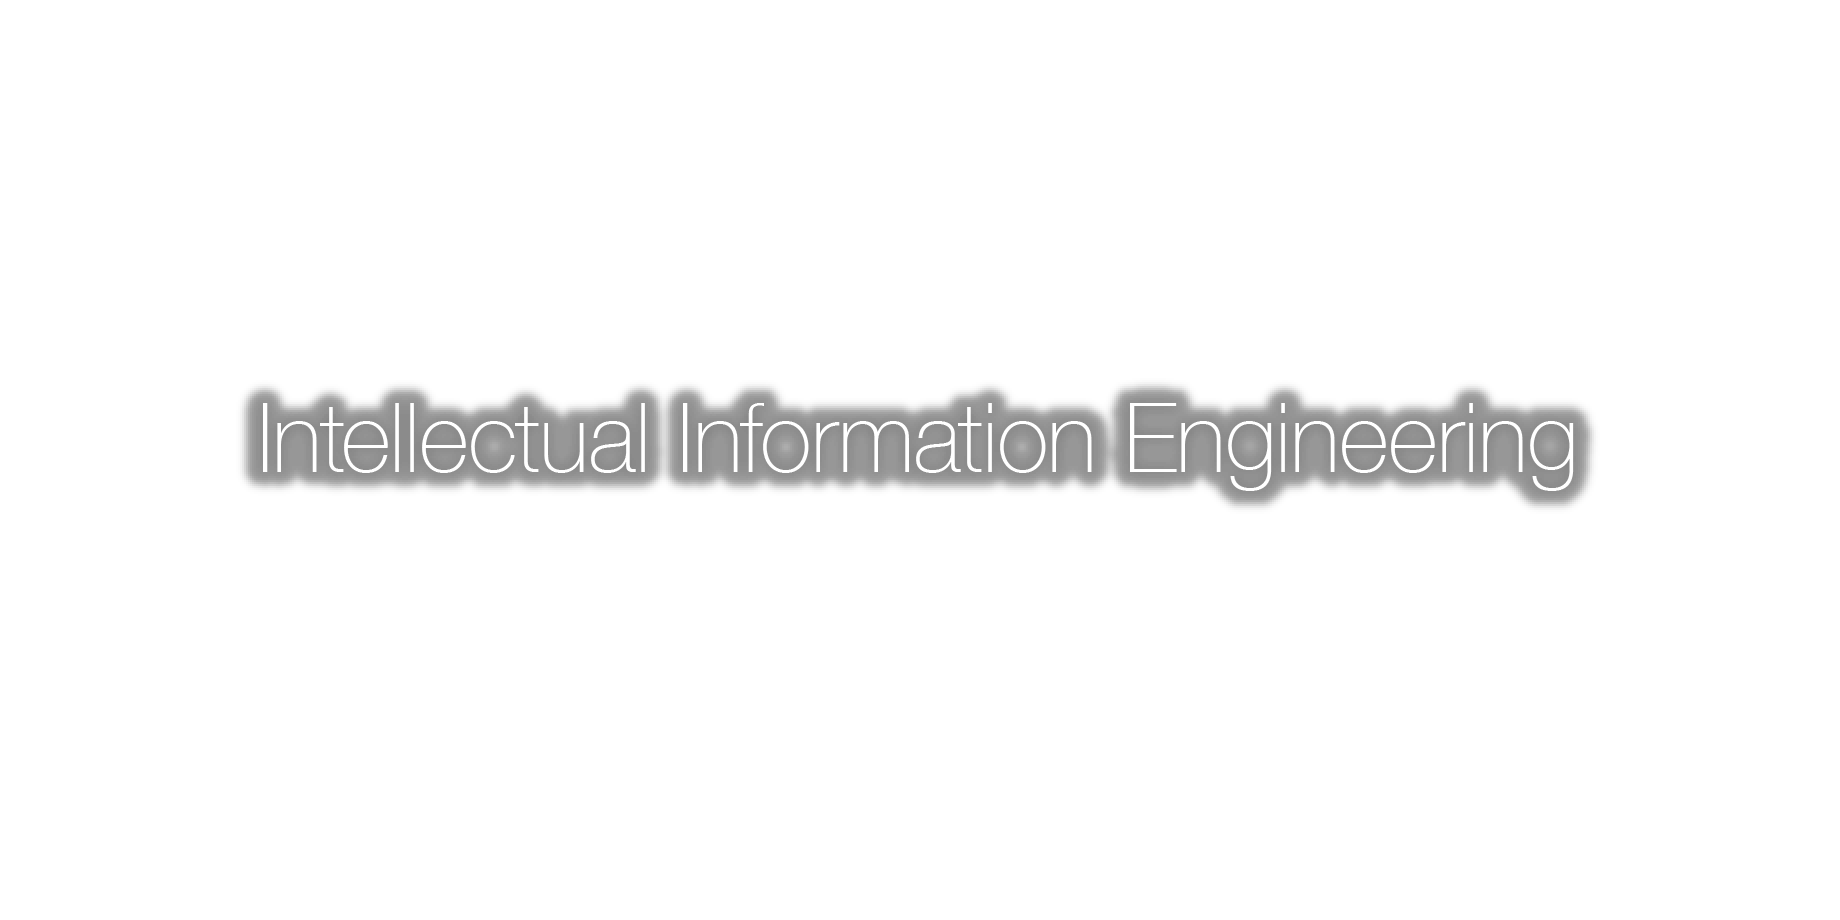 Intellectual Information Engineering